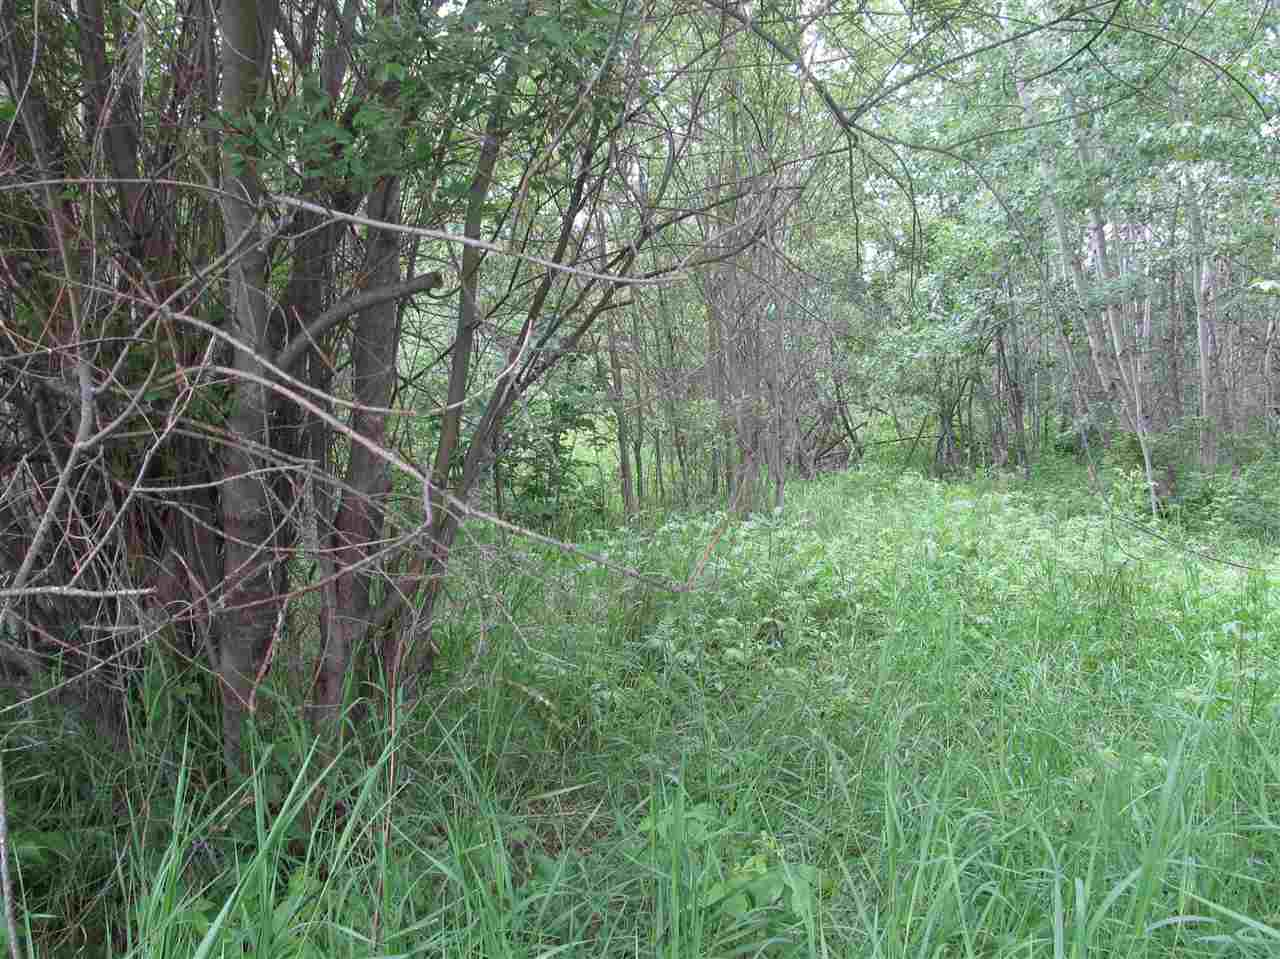 Photo 4: 451 Lakeview Drive: Rural Lac Ste. Anne County Rural Land/Vacant Lot for sale : MLS(r) # E4046294